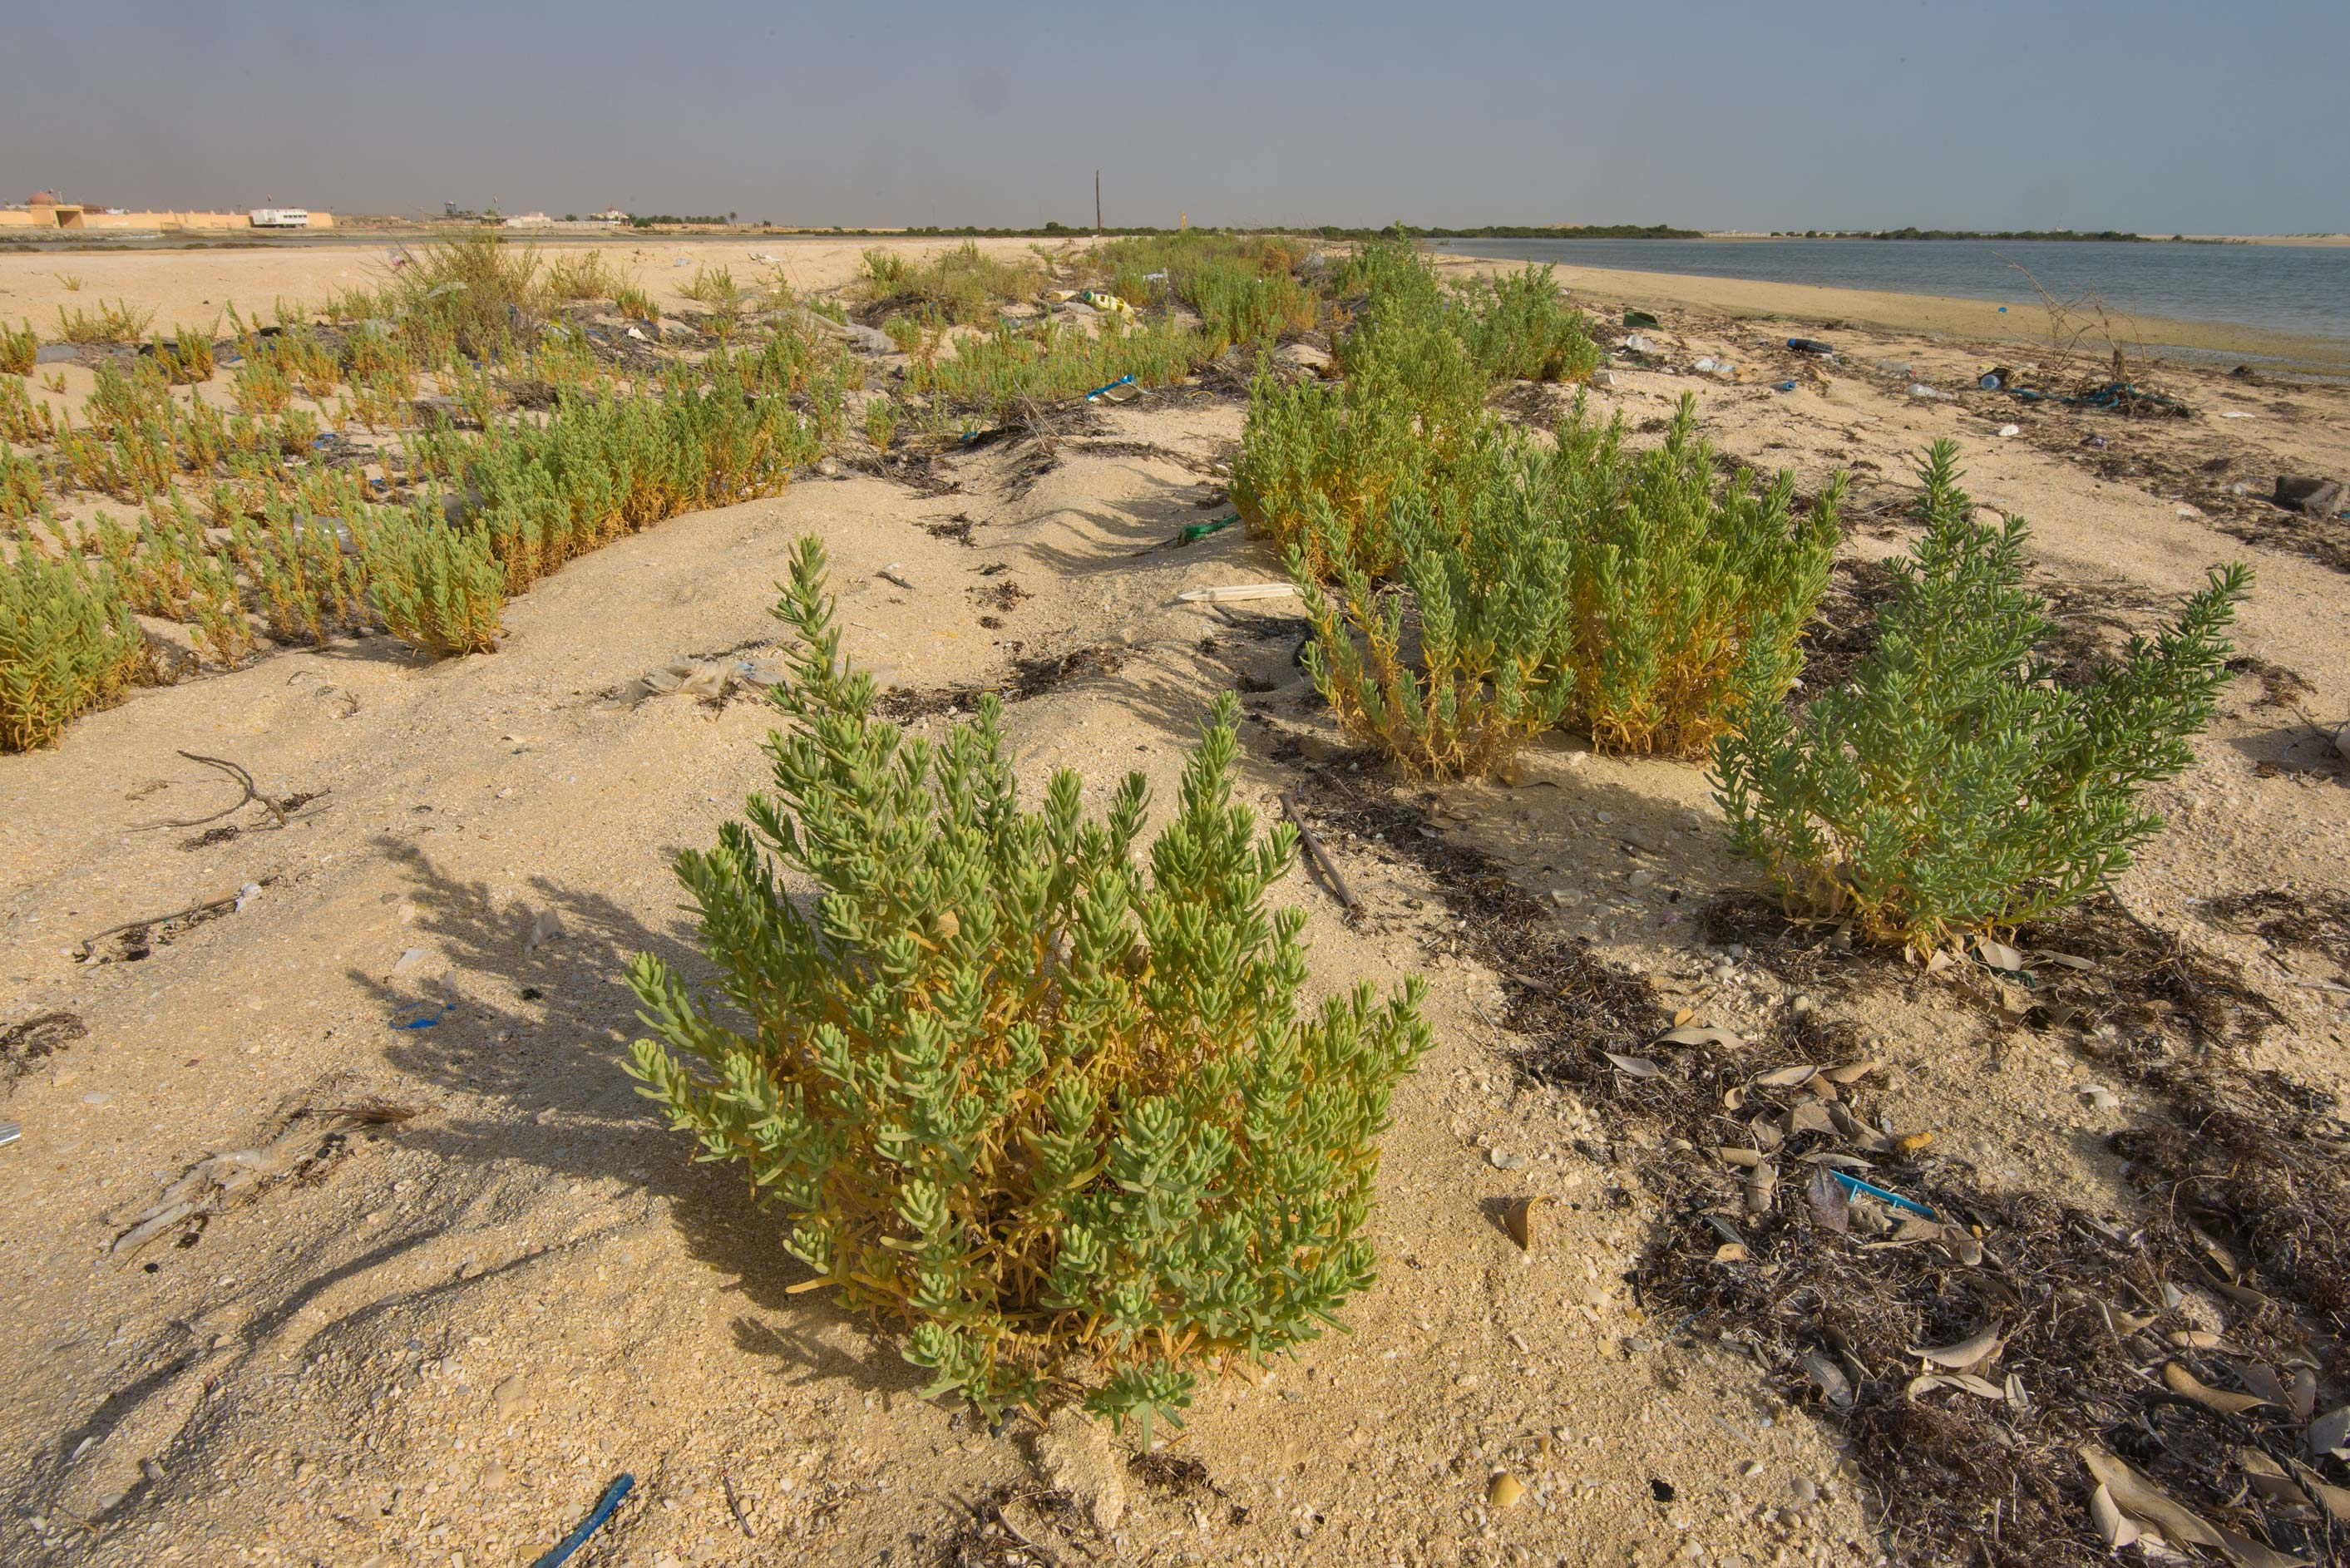 Plants of Bienertia sinuspersici on a beach near Fuwairit. Qatar